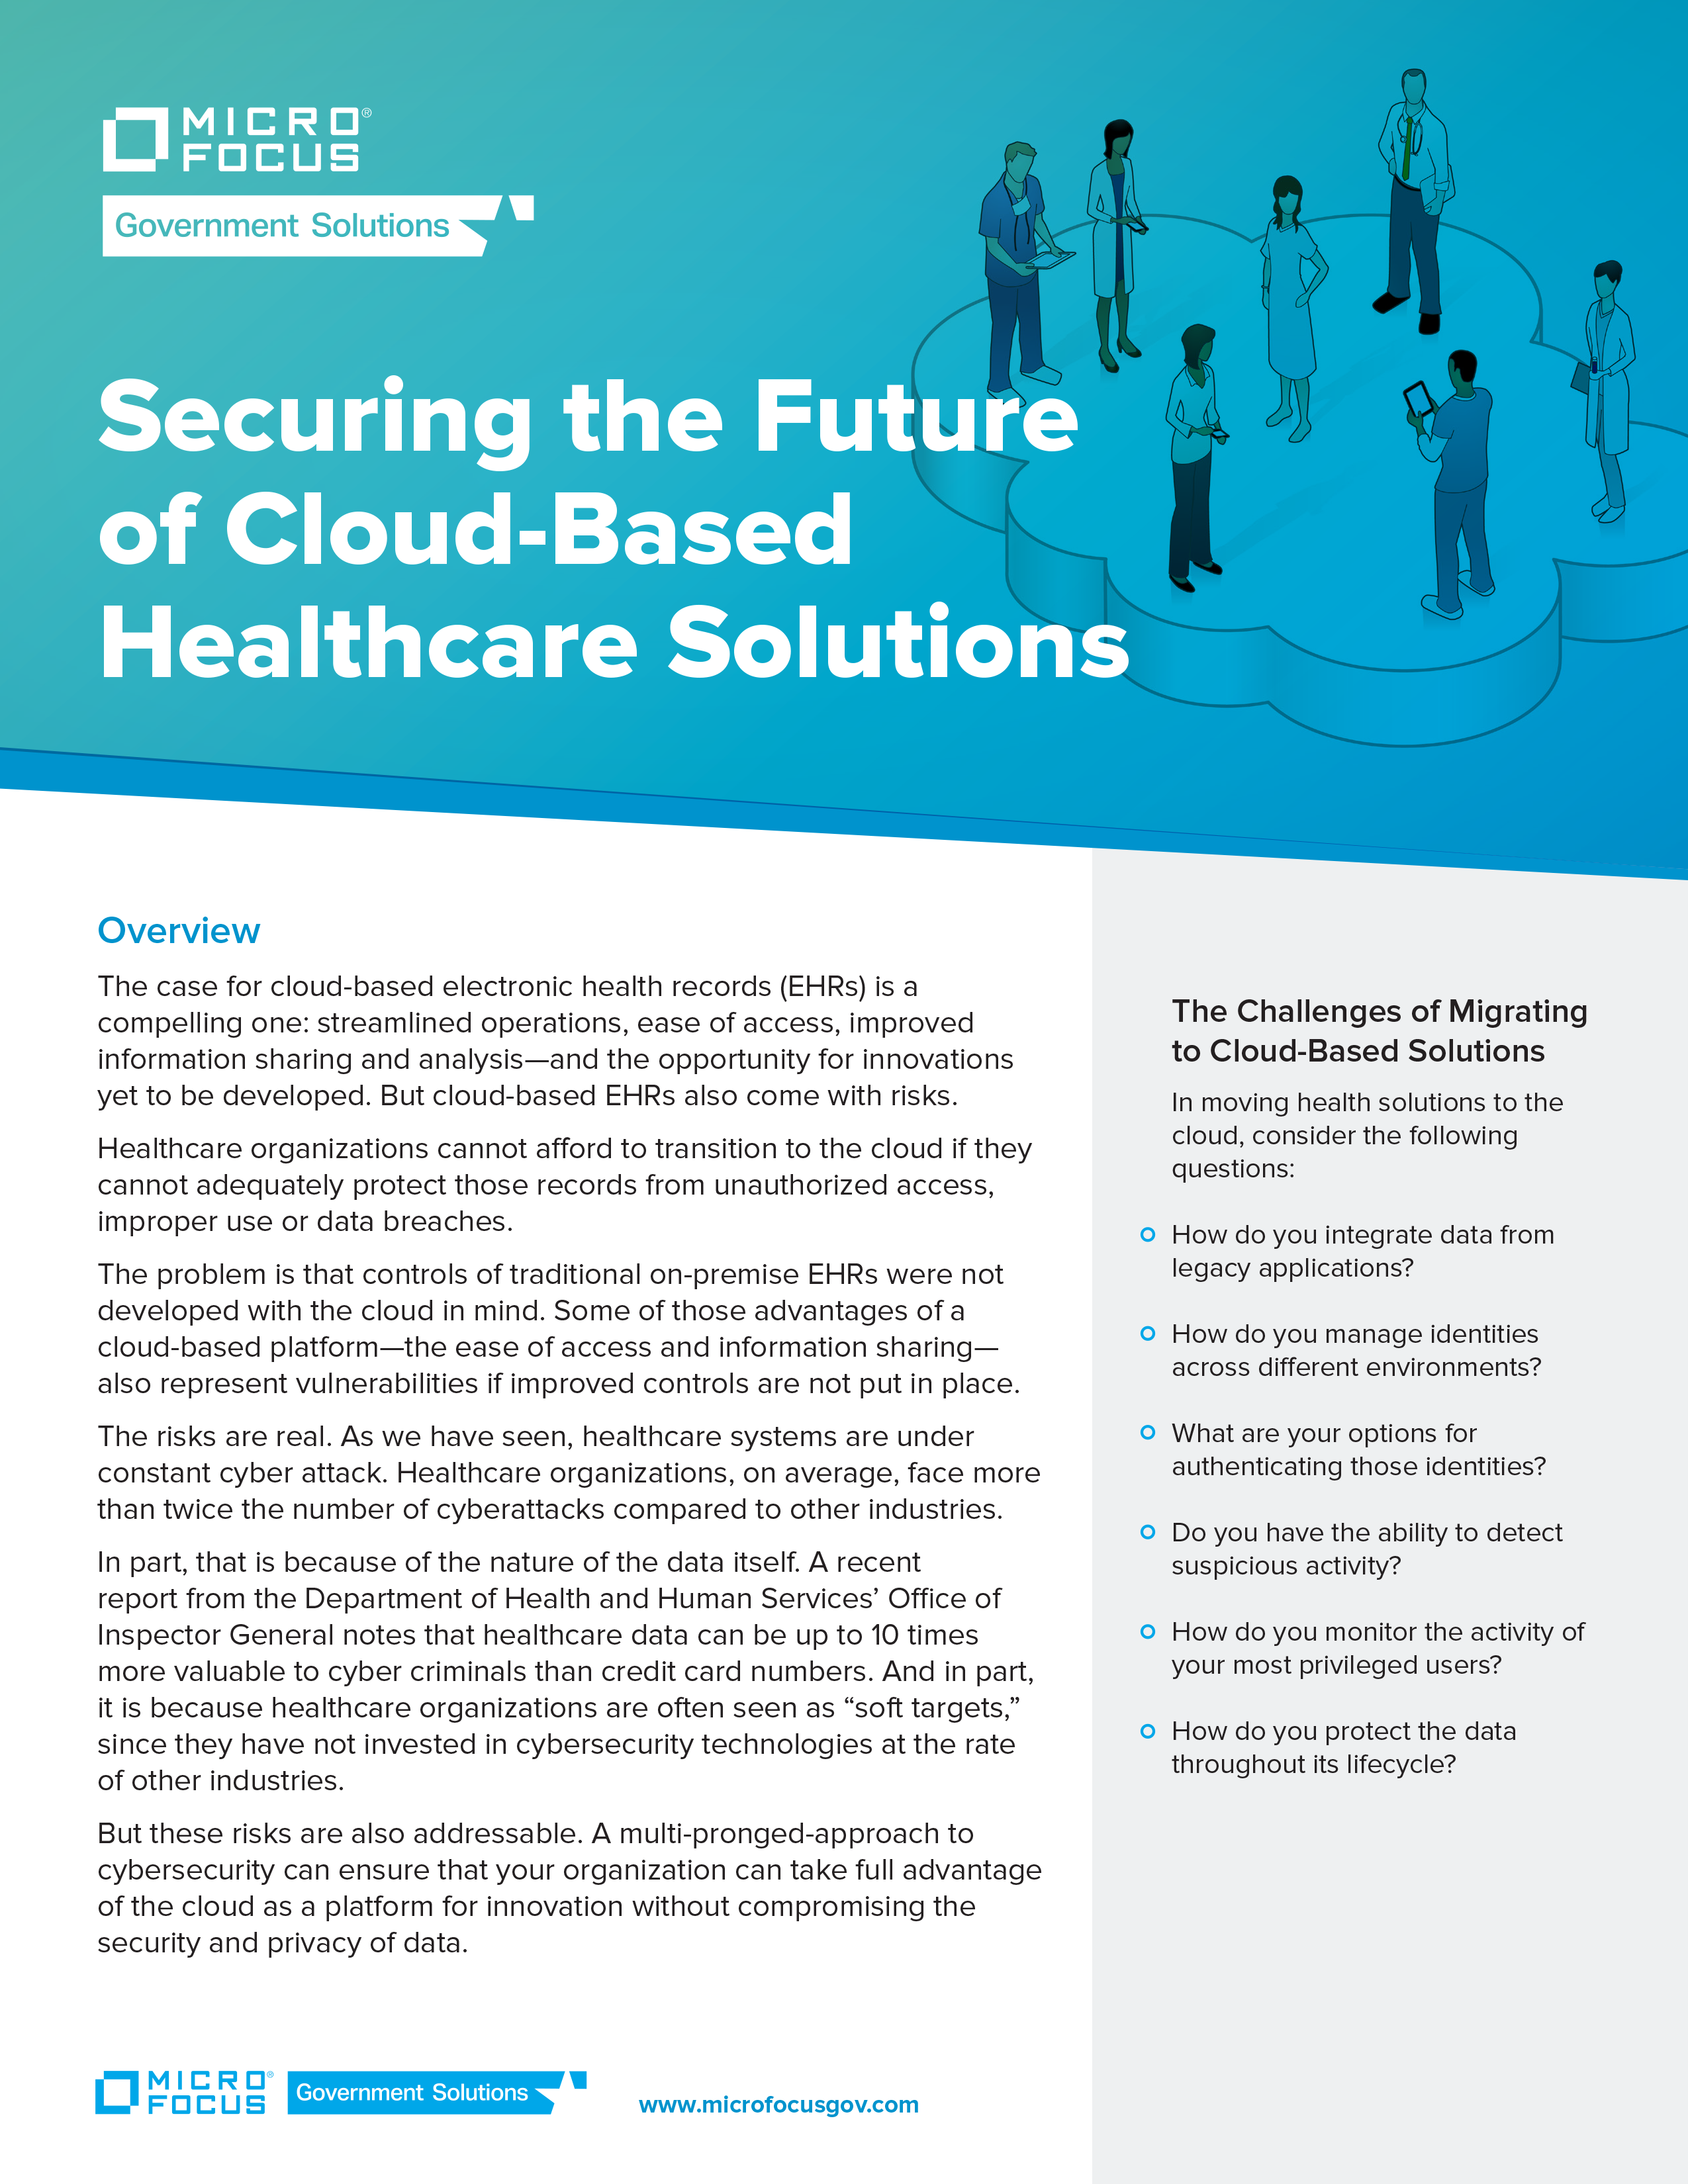 Securing the Future of Cloud Based Healthcare Solutions preview